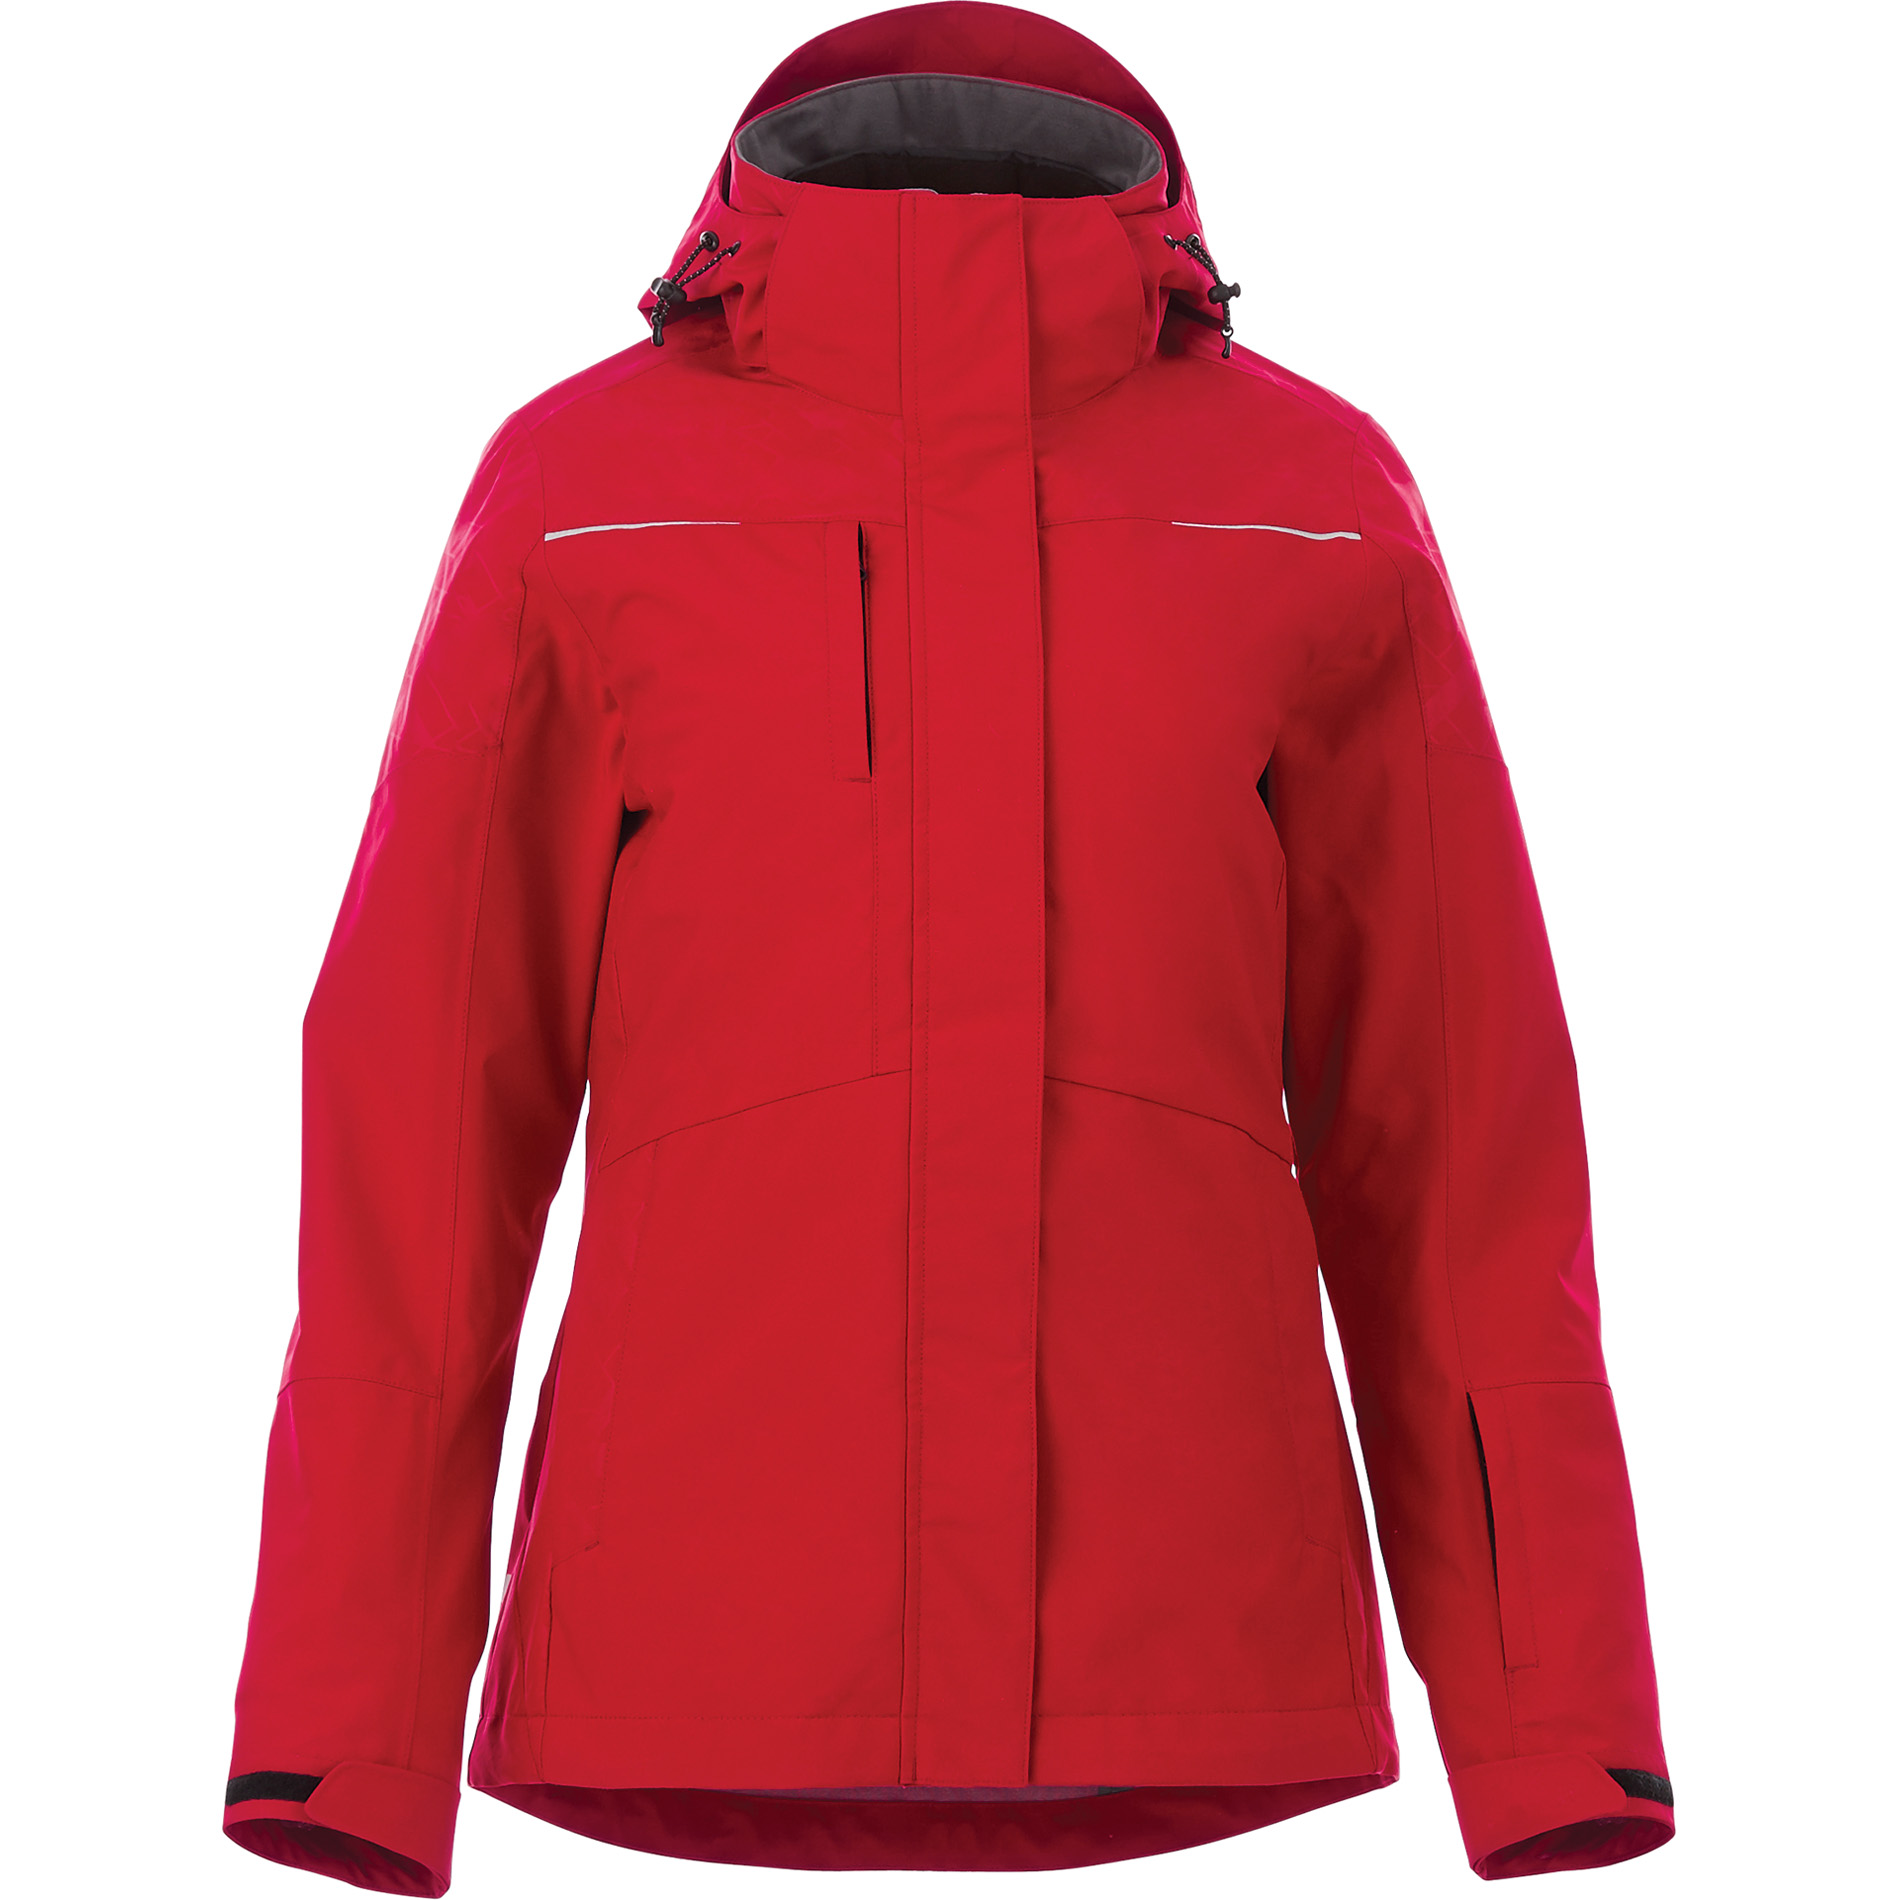 Elevate TM99306 - Women's YAMASKA 3-in-1 Jacket